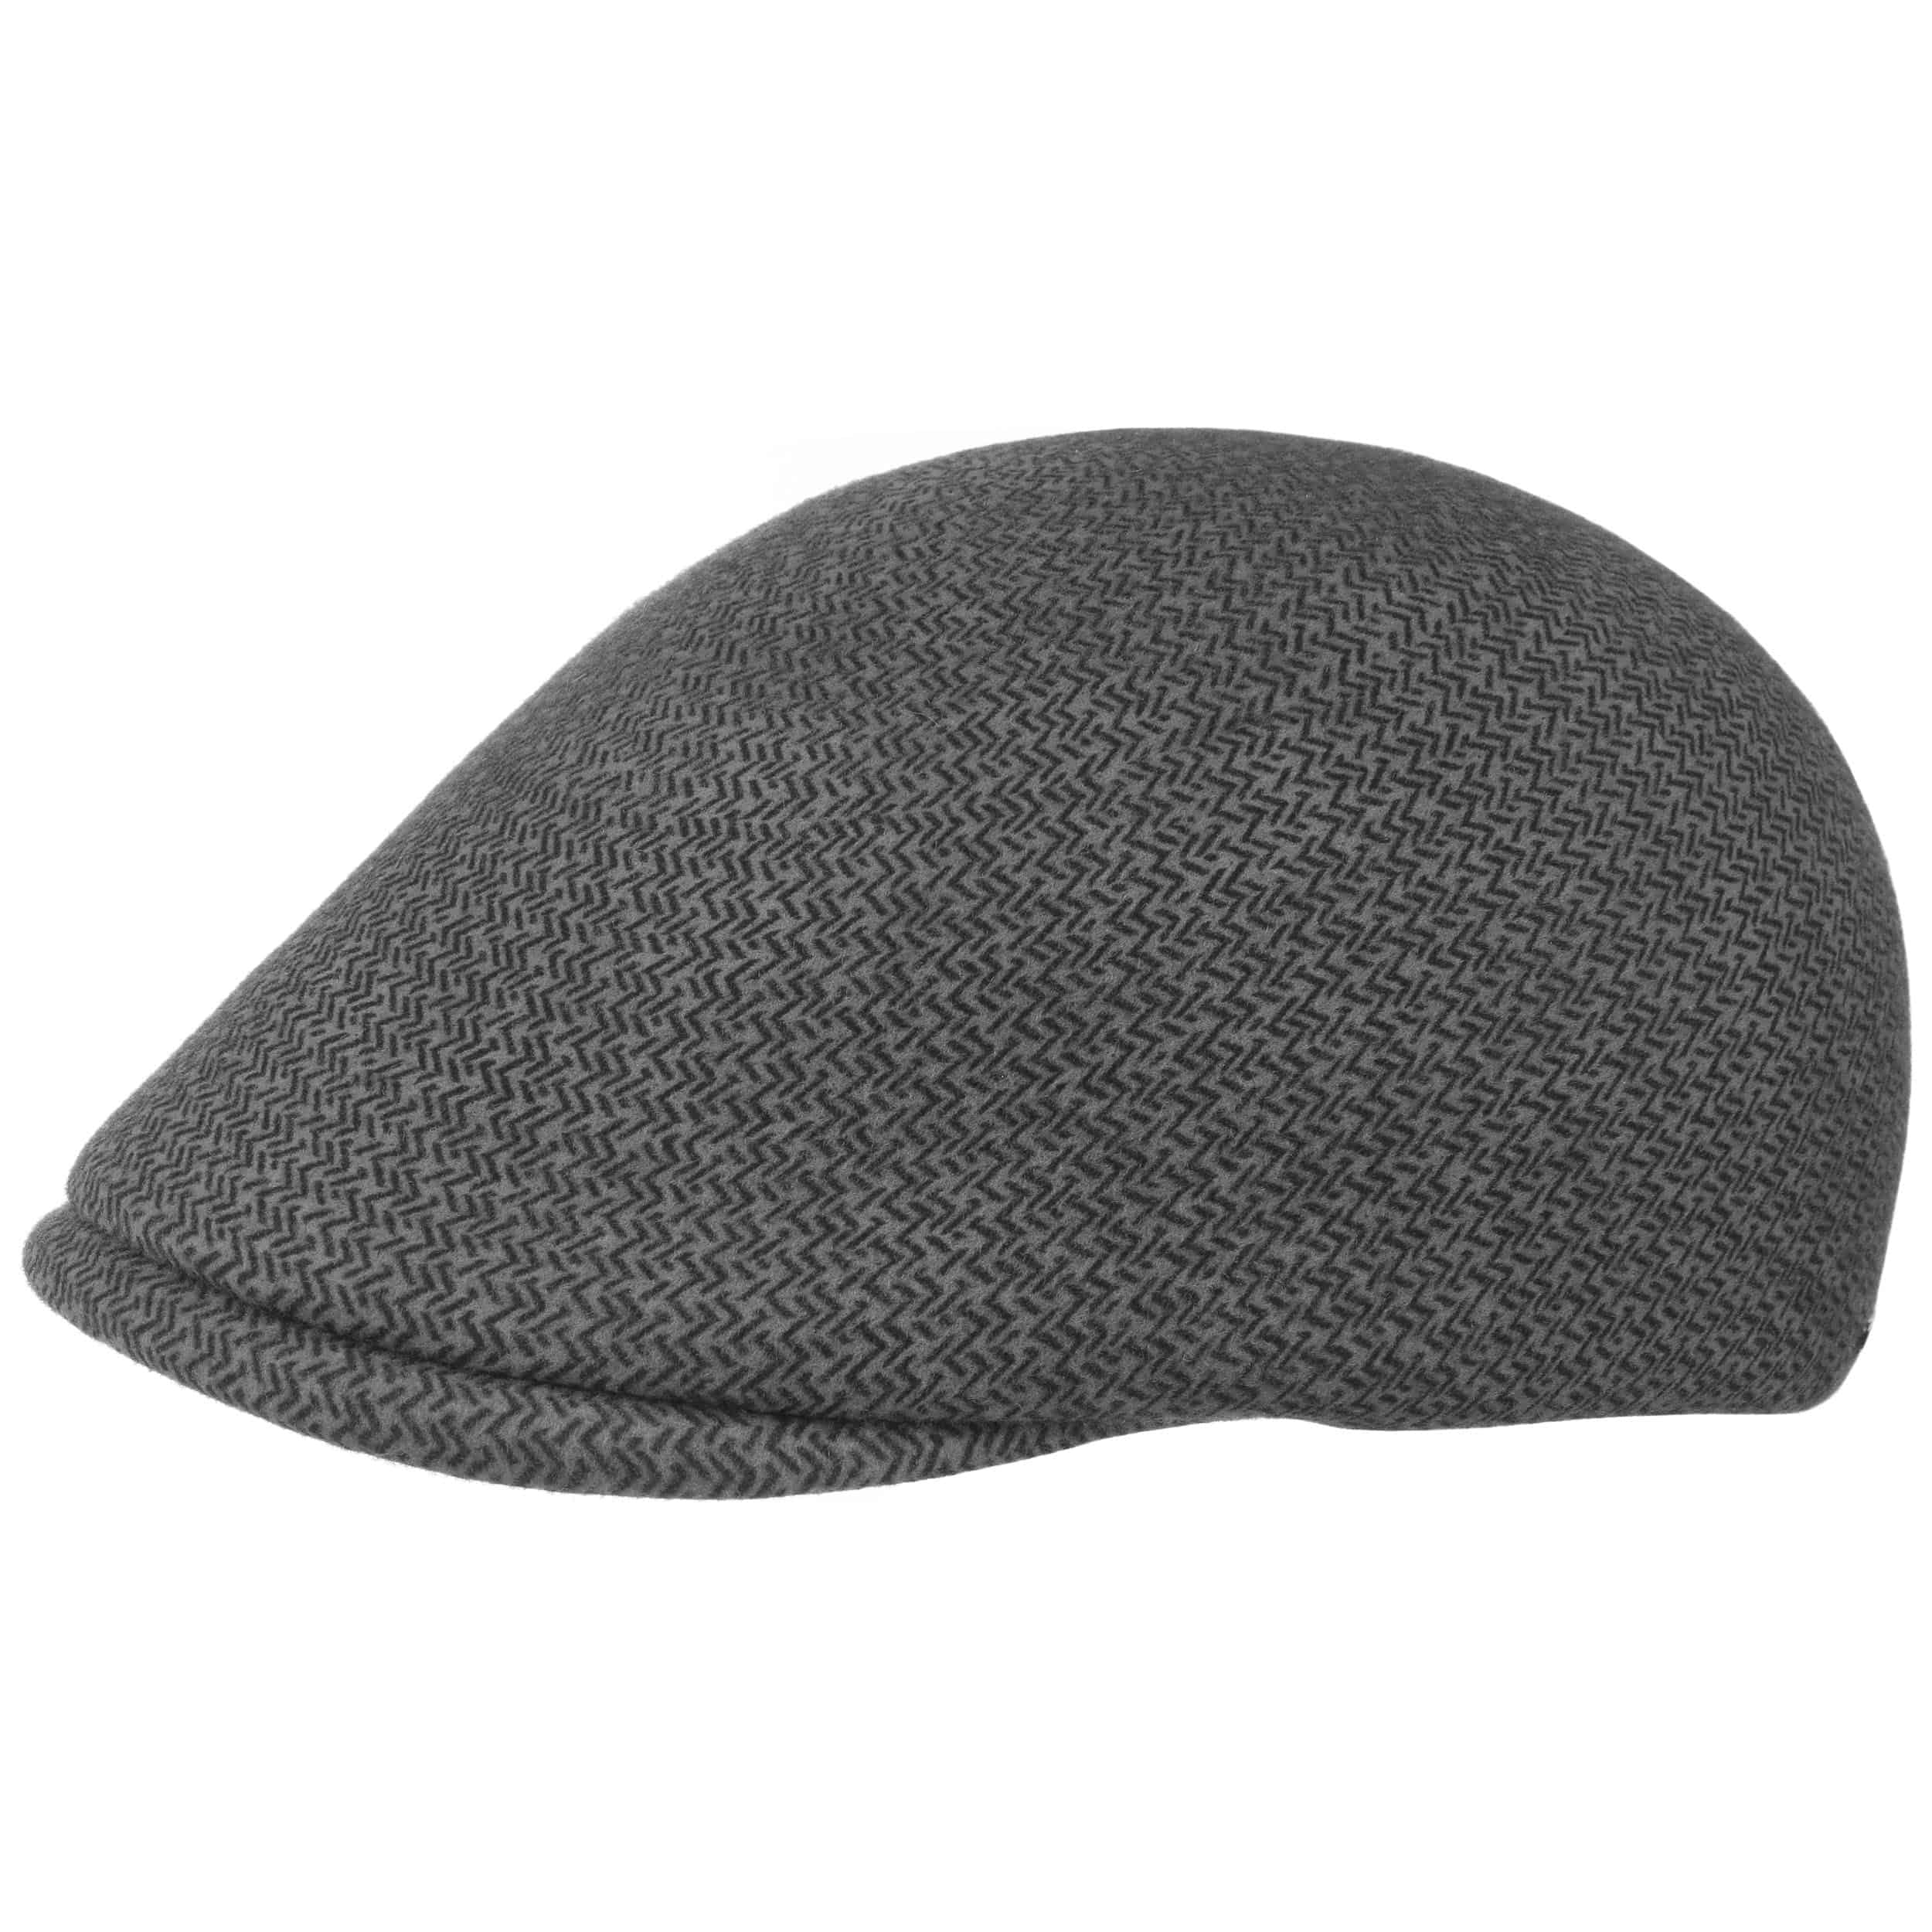 11bc72f8c0593 ... Lockhard Gatsby Cap by Stetson - anthracite 6 ...